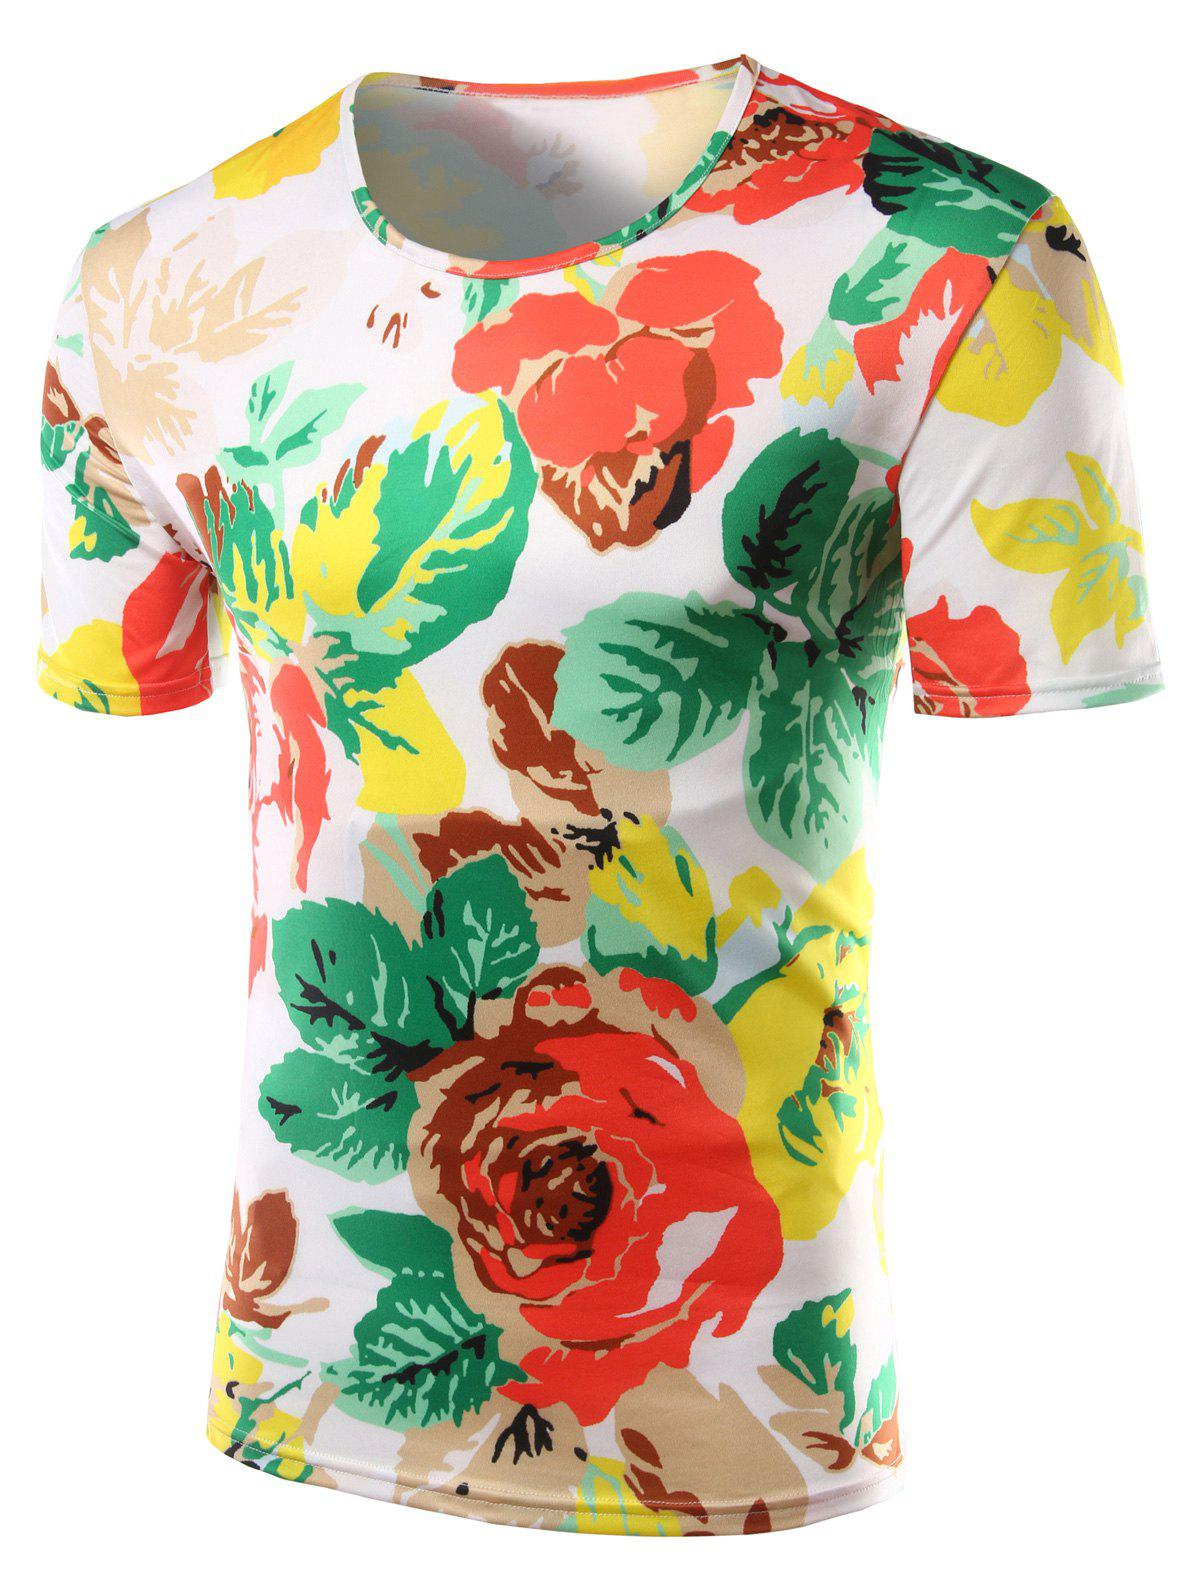 Slim Fit Flower Printed Round Collar Short Sleeves T-Shirts For Men - COLORMIX 2XL